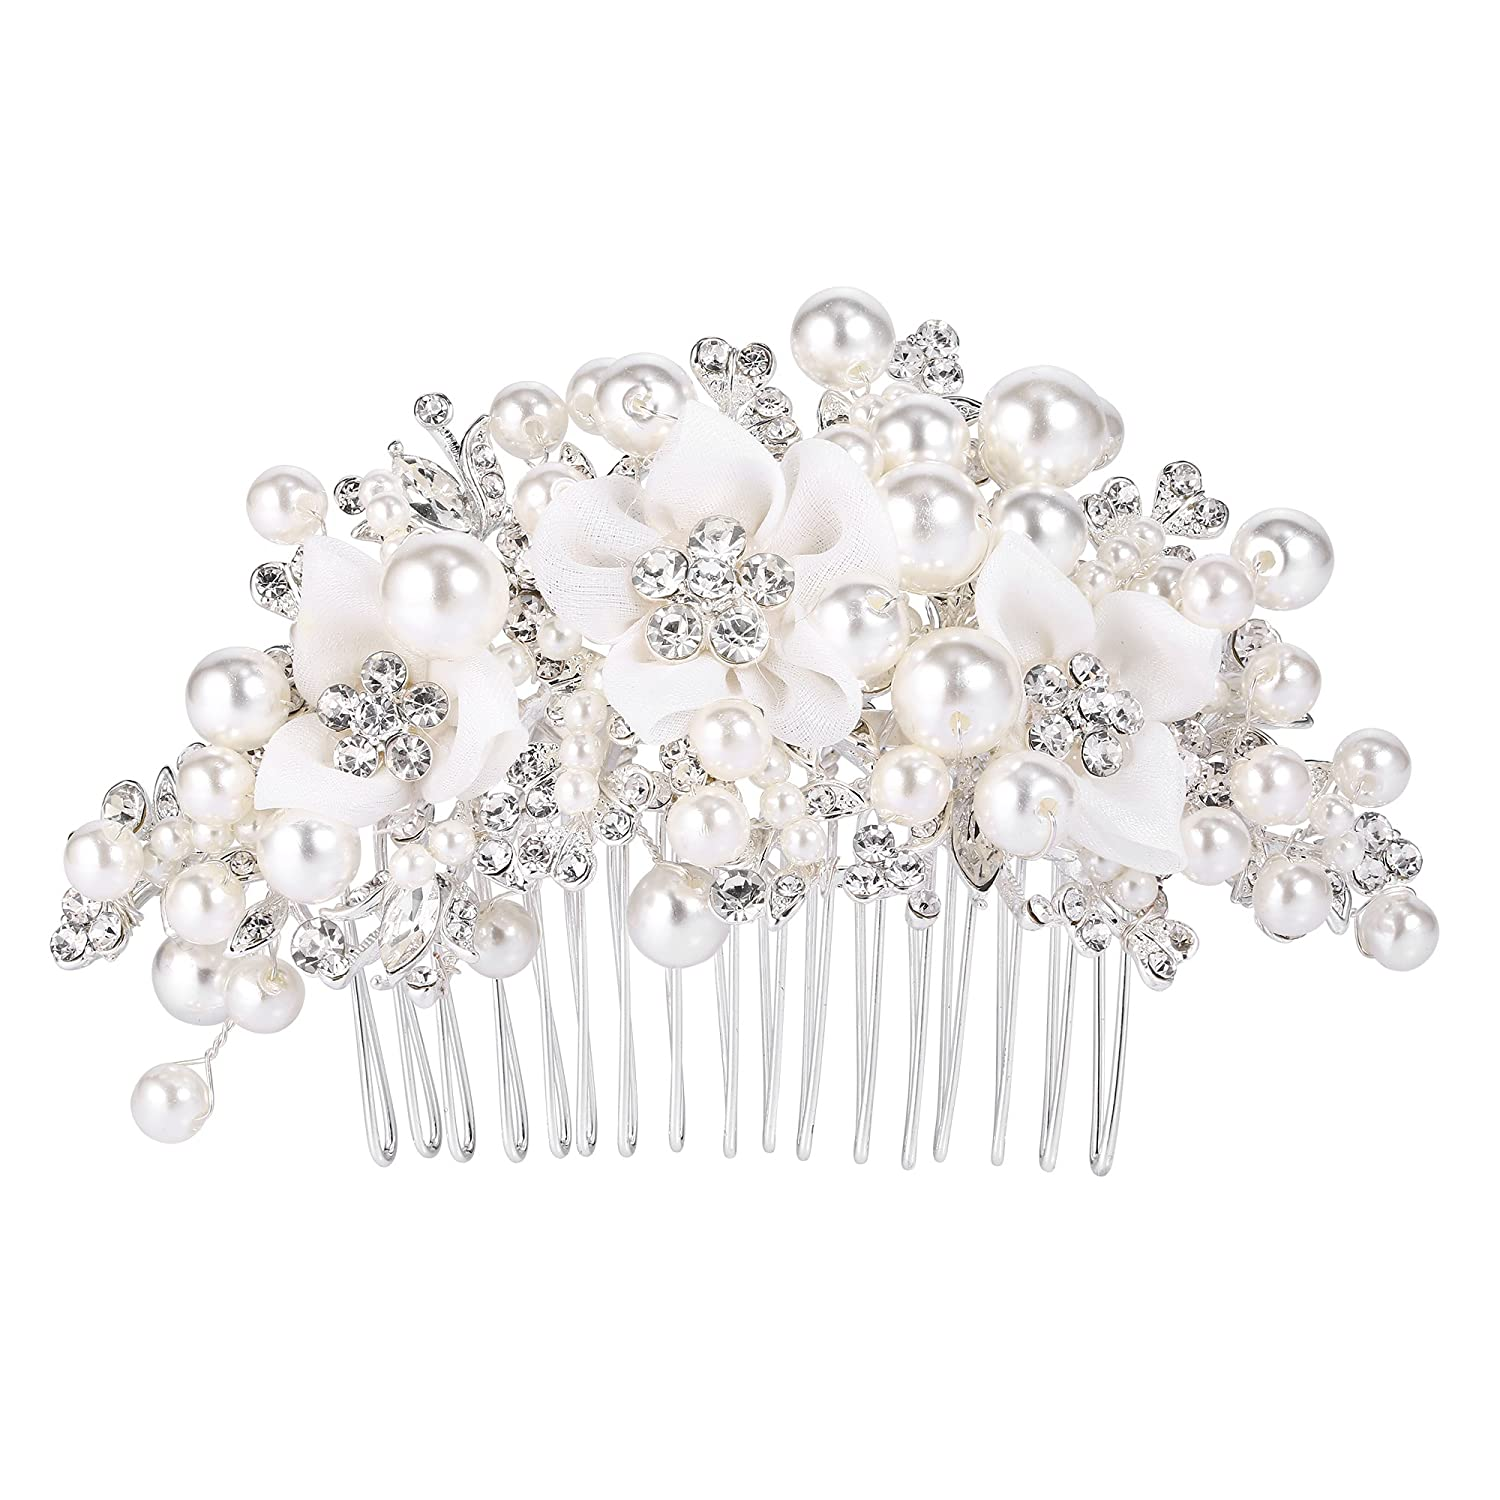 BriLove Women's Wedding Bridal Crystal Cream Simulated Pearl Flower Cluster Beads Hair Comb Clear Silver Tone 12001802-1ca